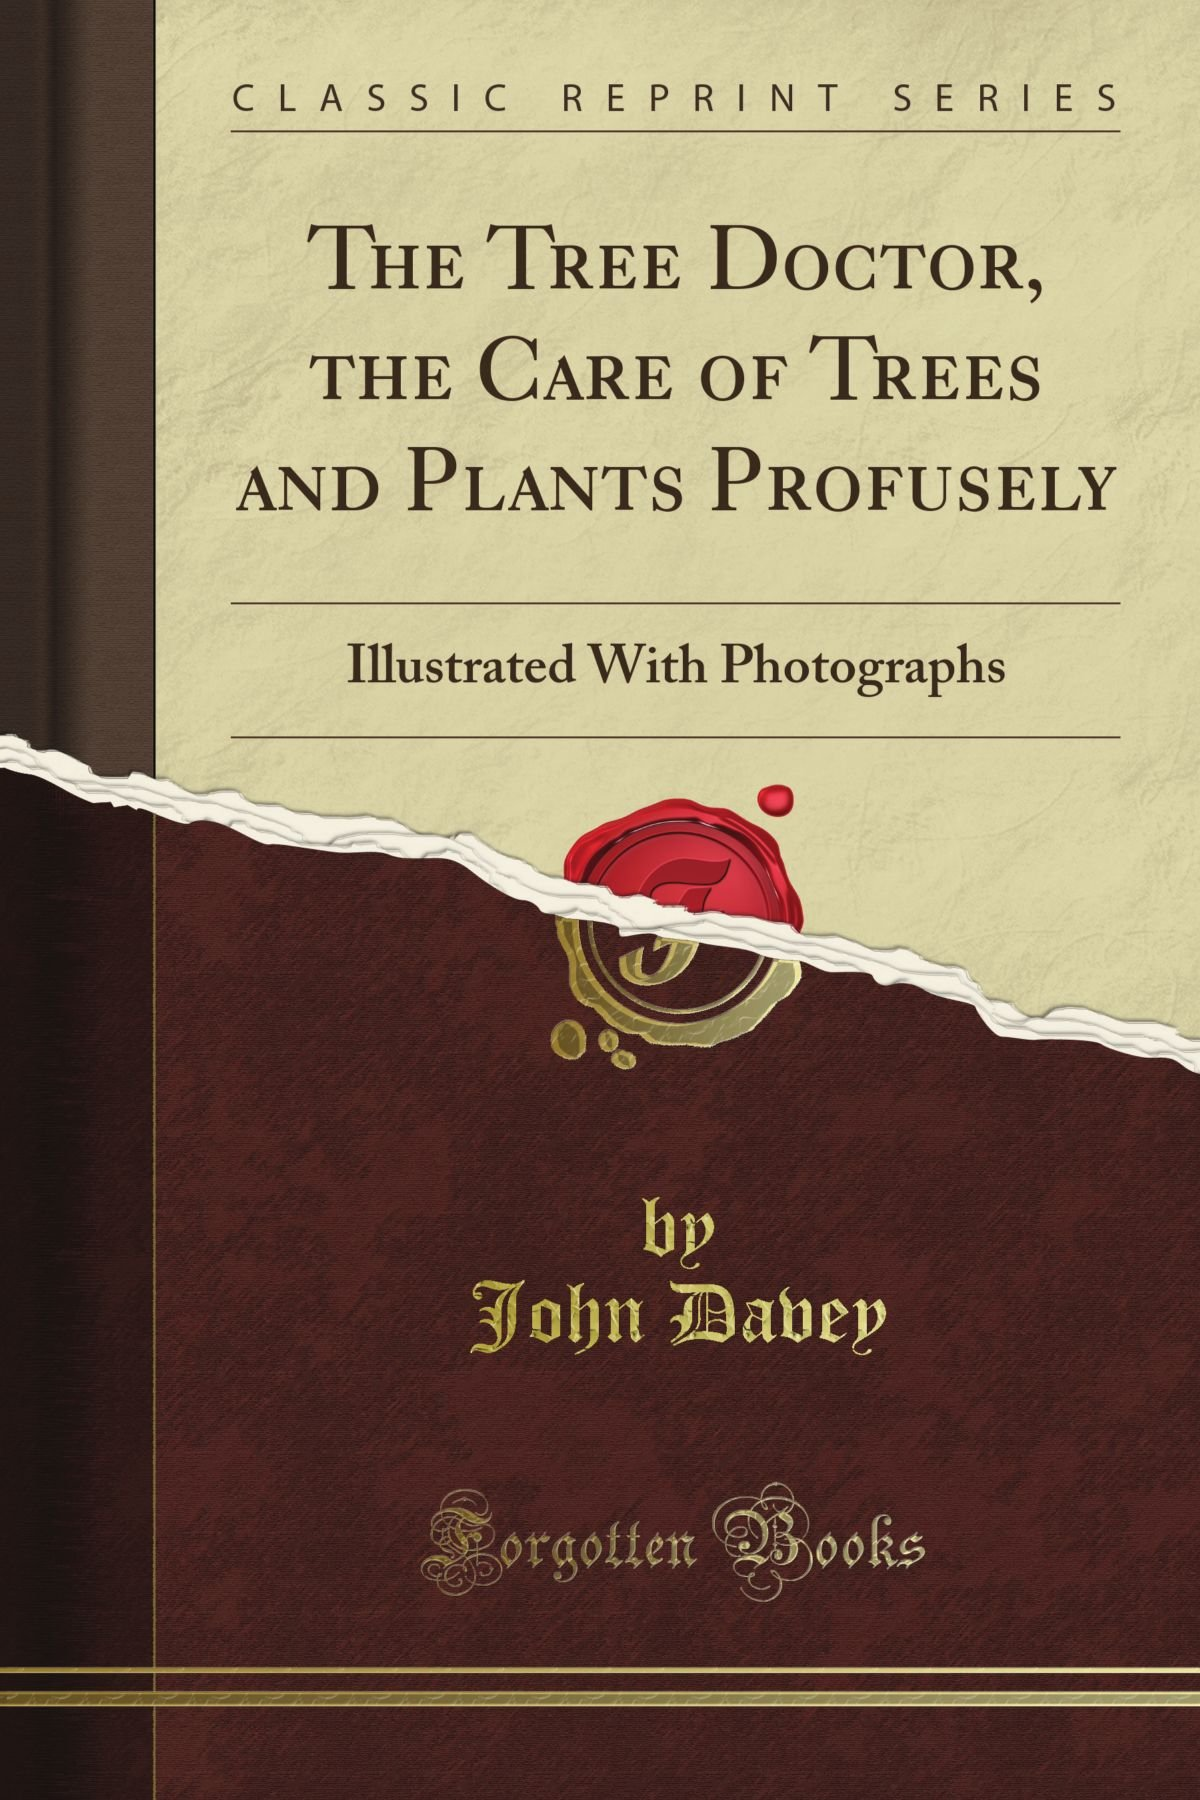 Read Online The Tree Doctor, the Care of Trees and Plants Profusely: Illustrated With Photographs (Classic Reprint) PDF